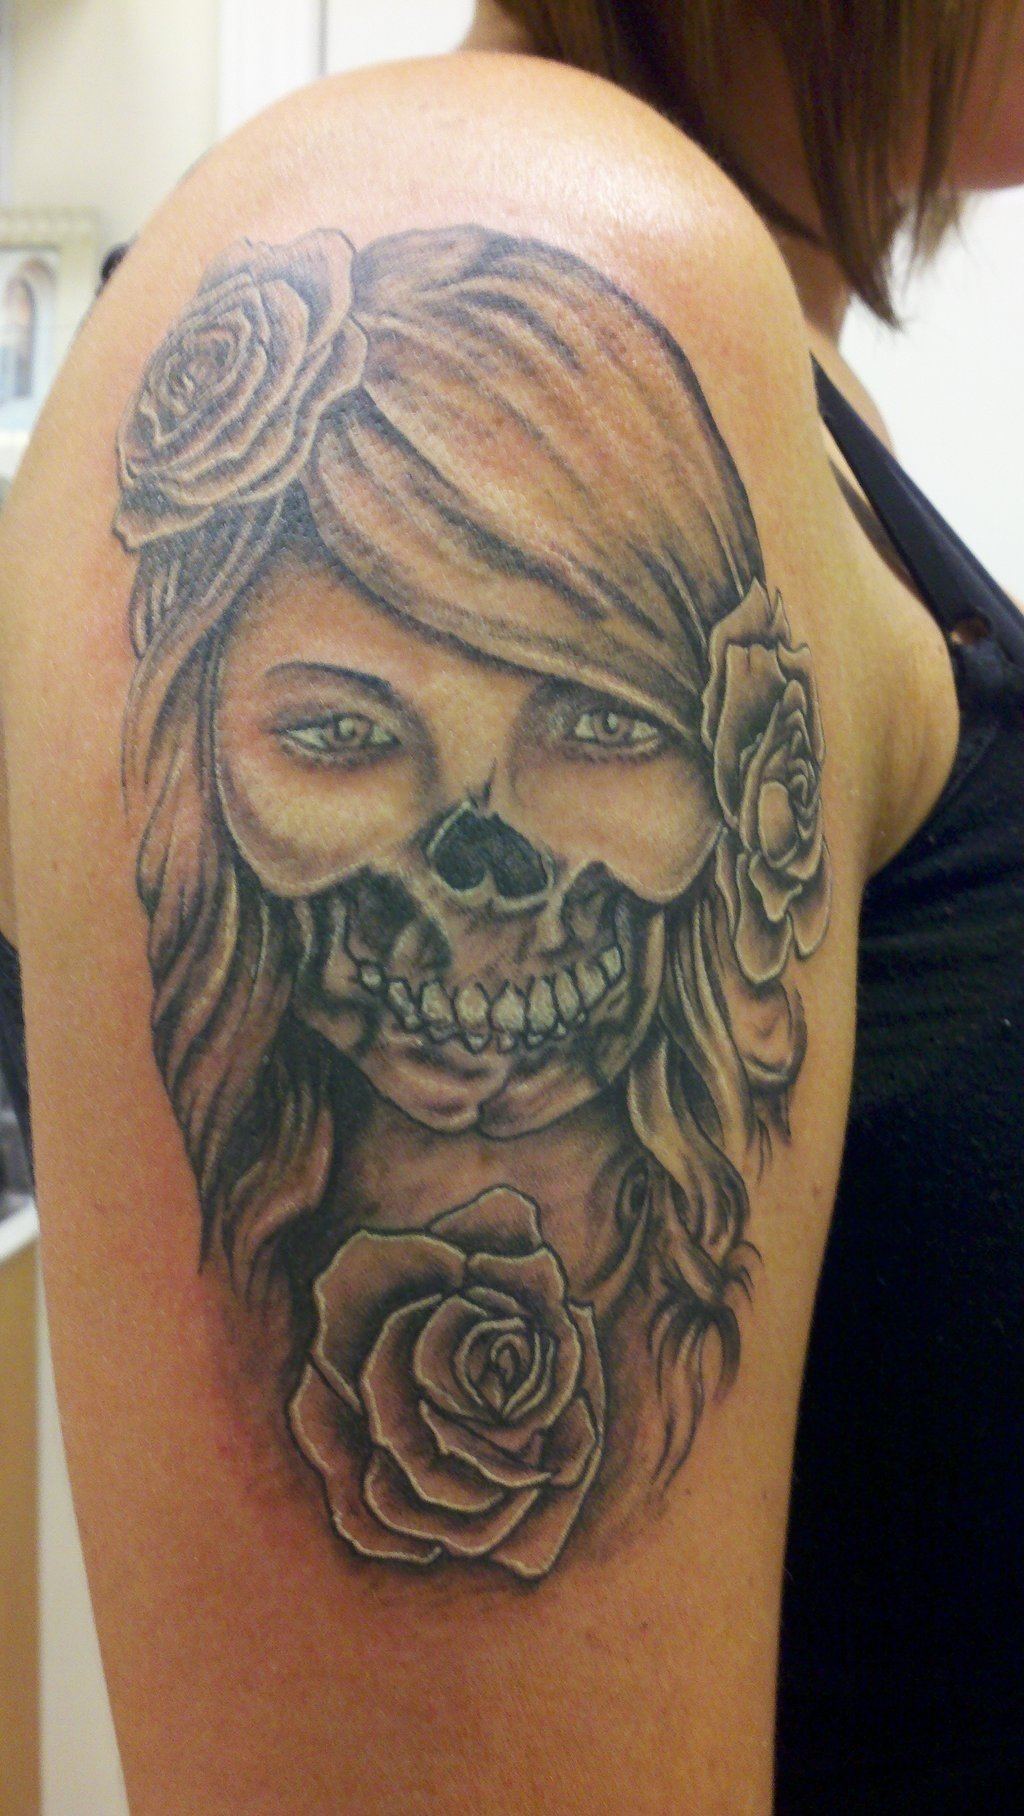 10 Fashionable Day Of The Dead Tattoo Ideas tattoos of girls tattoos and cool art pinterest meaning 2021